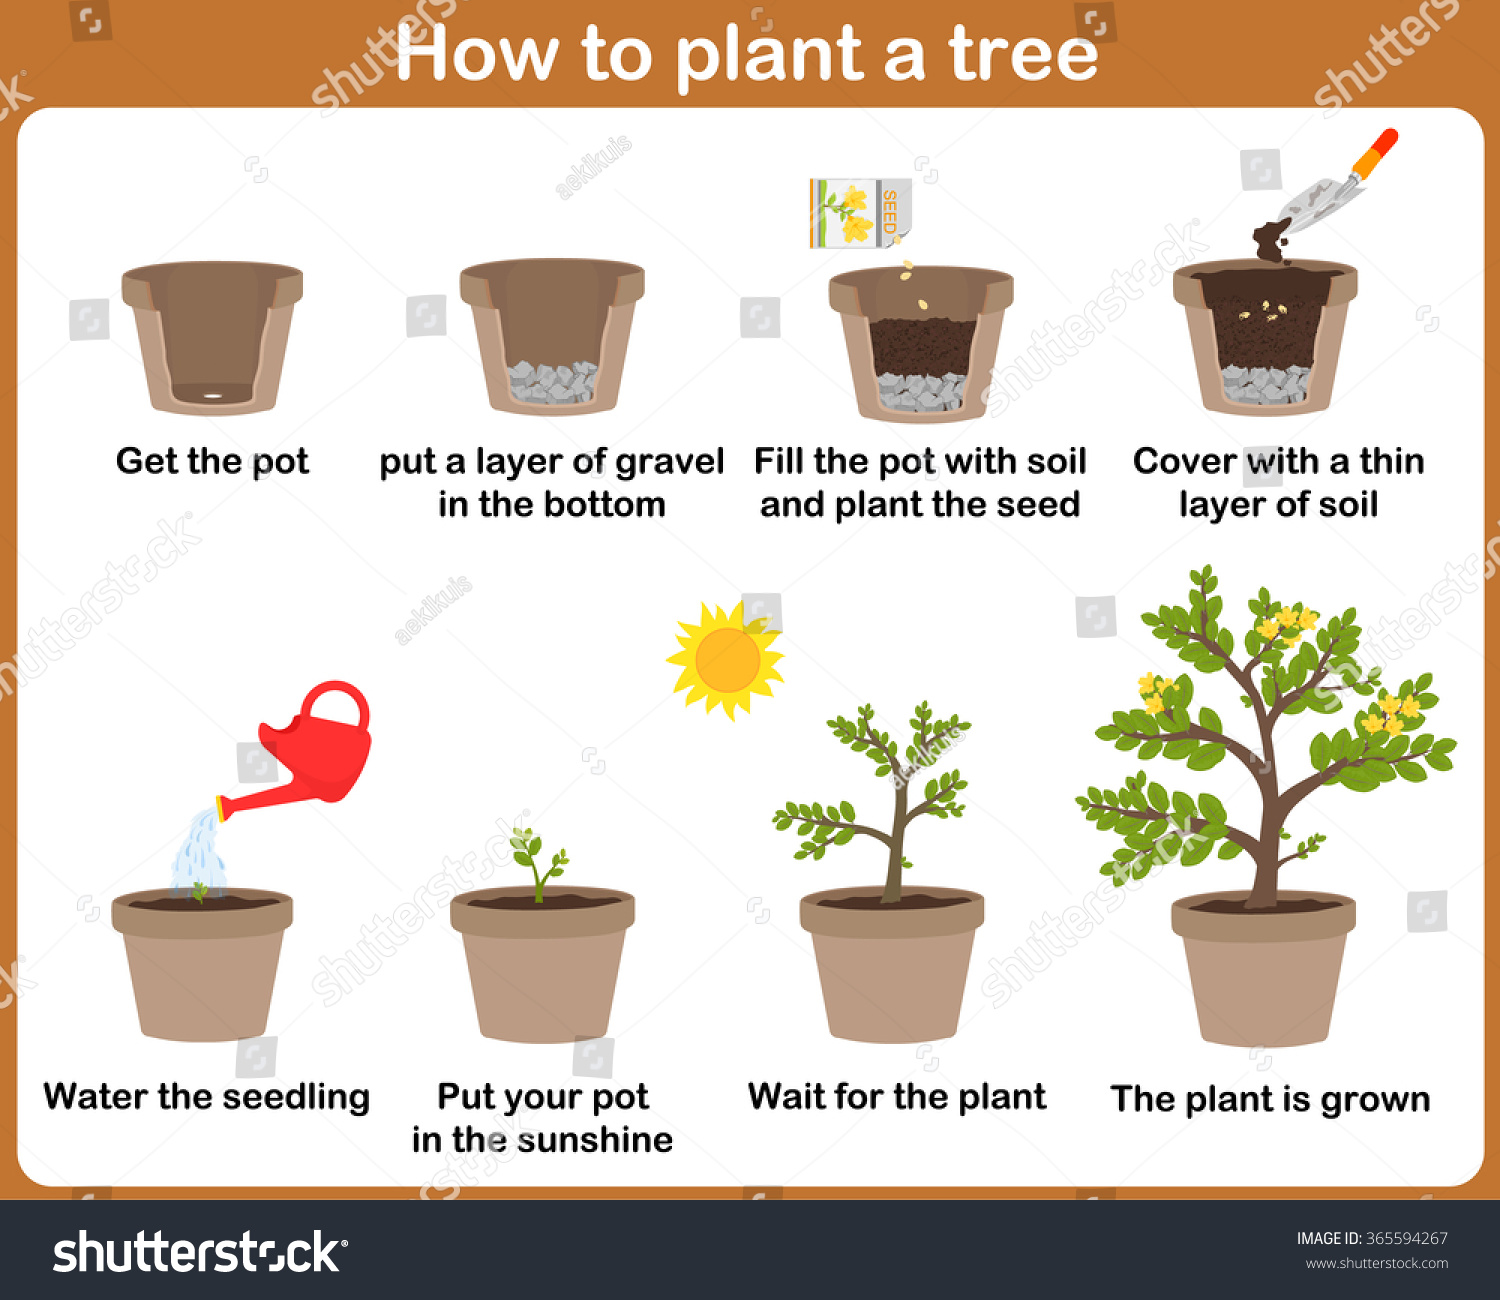 How plant tree easy step by stock vector 365594267 shutterstock - Fir tree planting instructions a vigorous garden ...